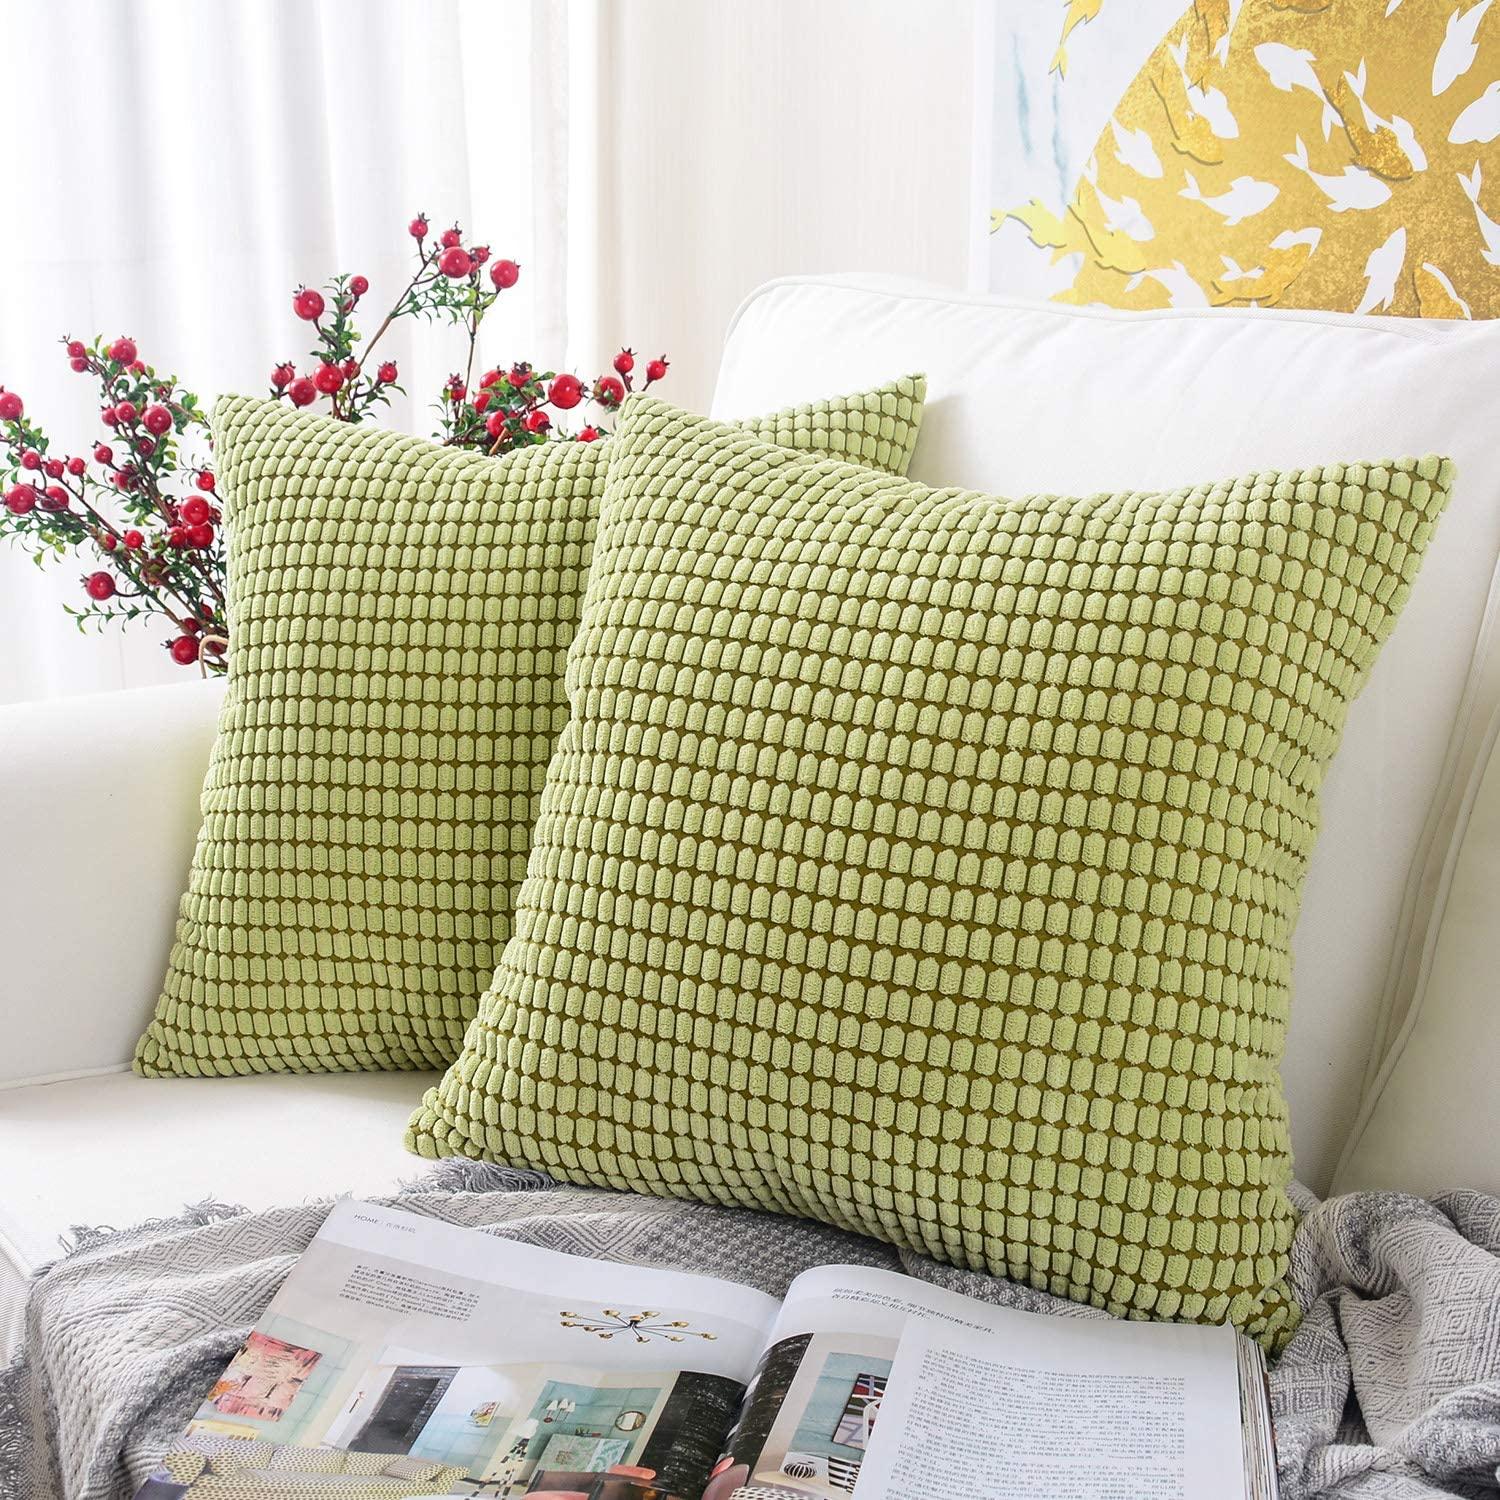 MERNETTE New Year/Christmas Decorations Corduroy Soft Decorative Square Throw Pillow Cover Cushion Covers Pillowcase, Home Decor for Party/Xmas 20x20 Inch/50x50 cm, Bean Green, Set of 2